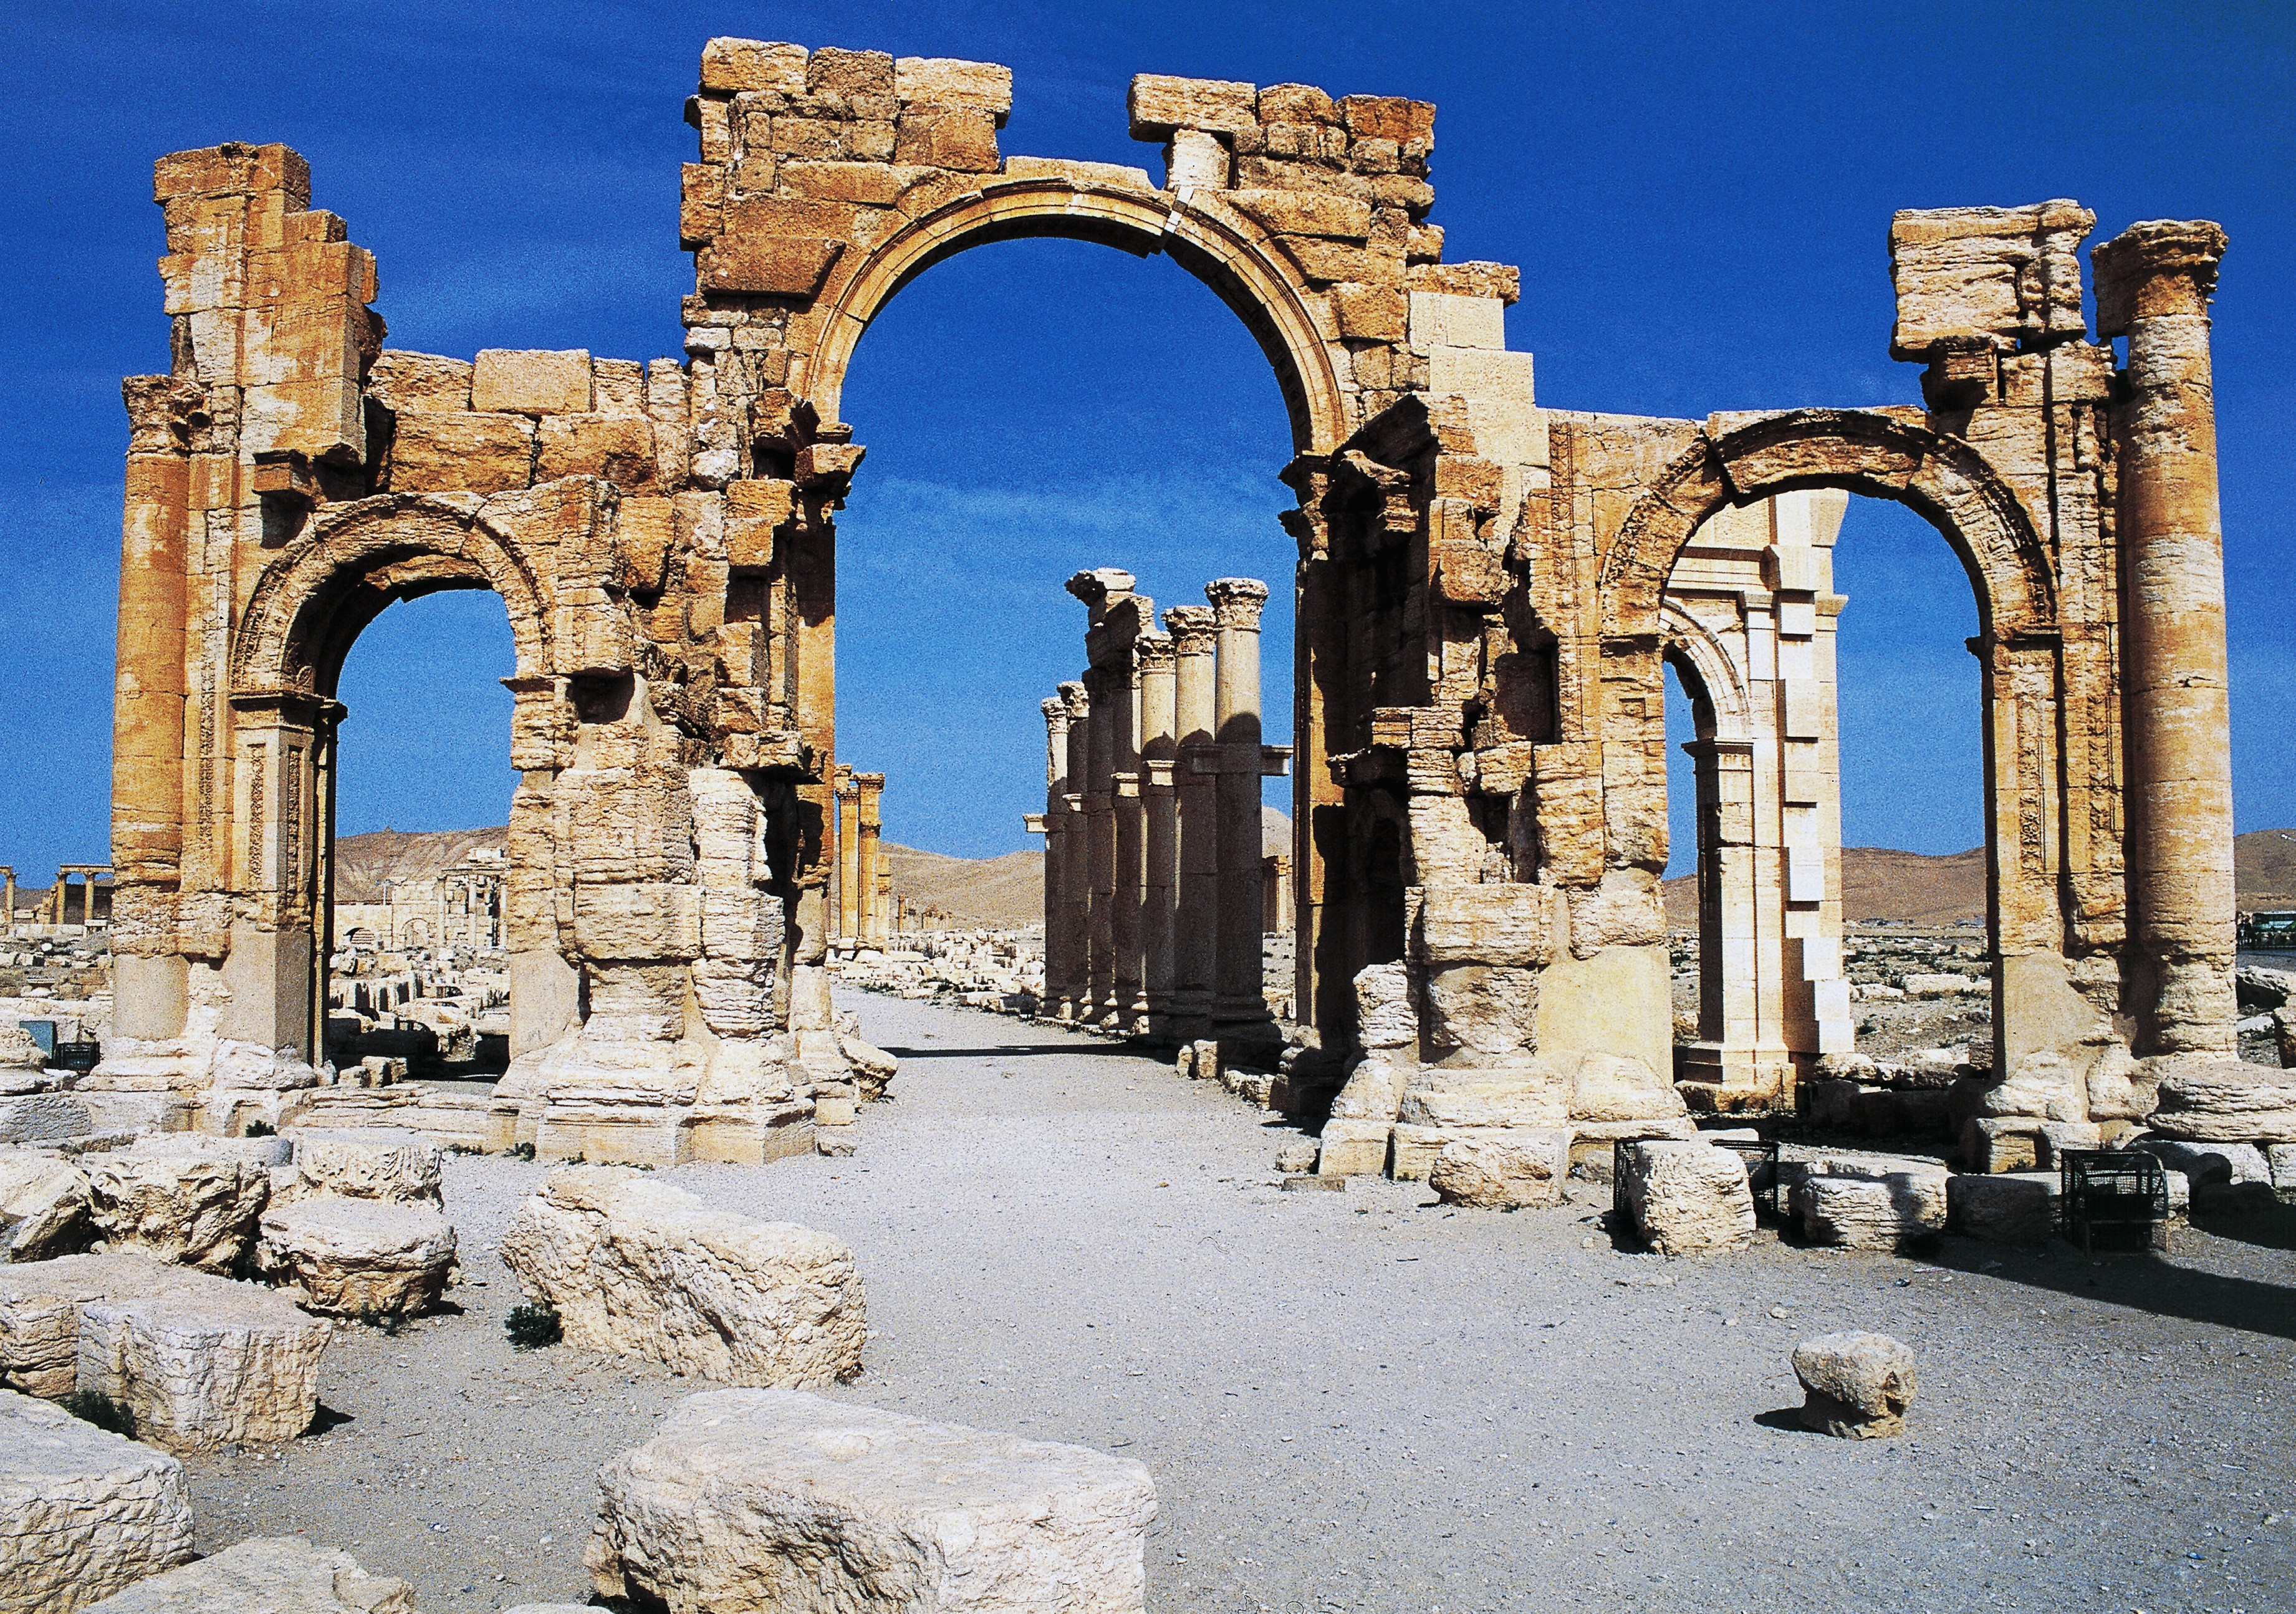 The Triumphal Arch Of Septimius Severus, Palmyra (Unesco World Heritage List, 1980), Syria. Roman Civilisation, 1st-2nd Century AD. [95021510]